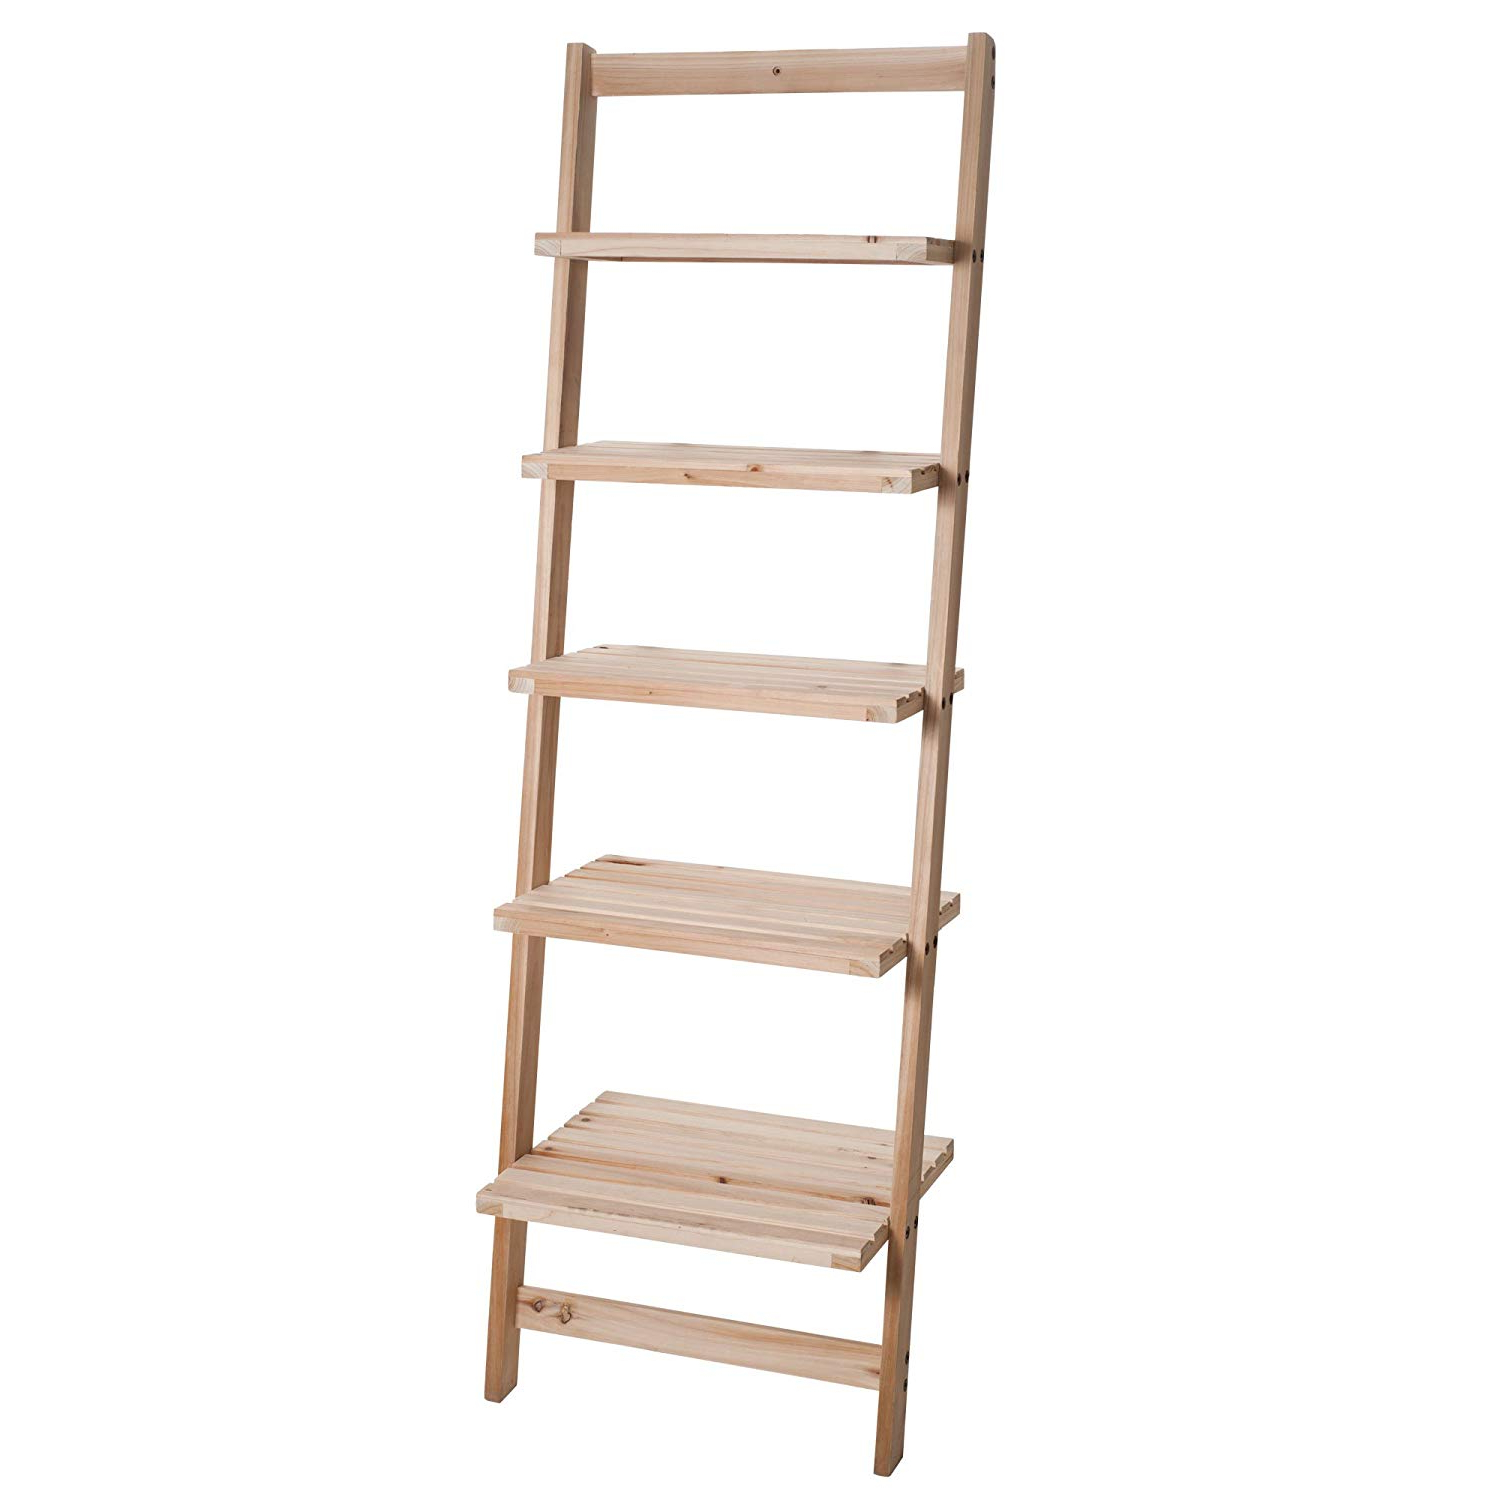 Book Shelf For Living Room, Bathroom, And Kitchen Shelving, Home Décor Lavish Home 5 Tier Decorative Leaning Ladder Shelf Wood Display Shelving In Well Known Leandra Ladder Bookcases (View 12 of 20)